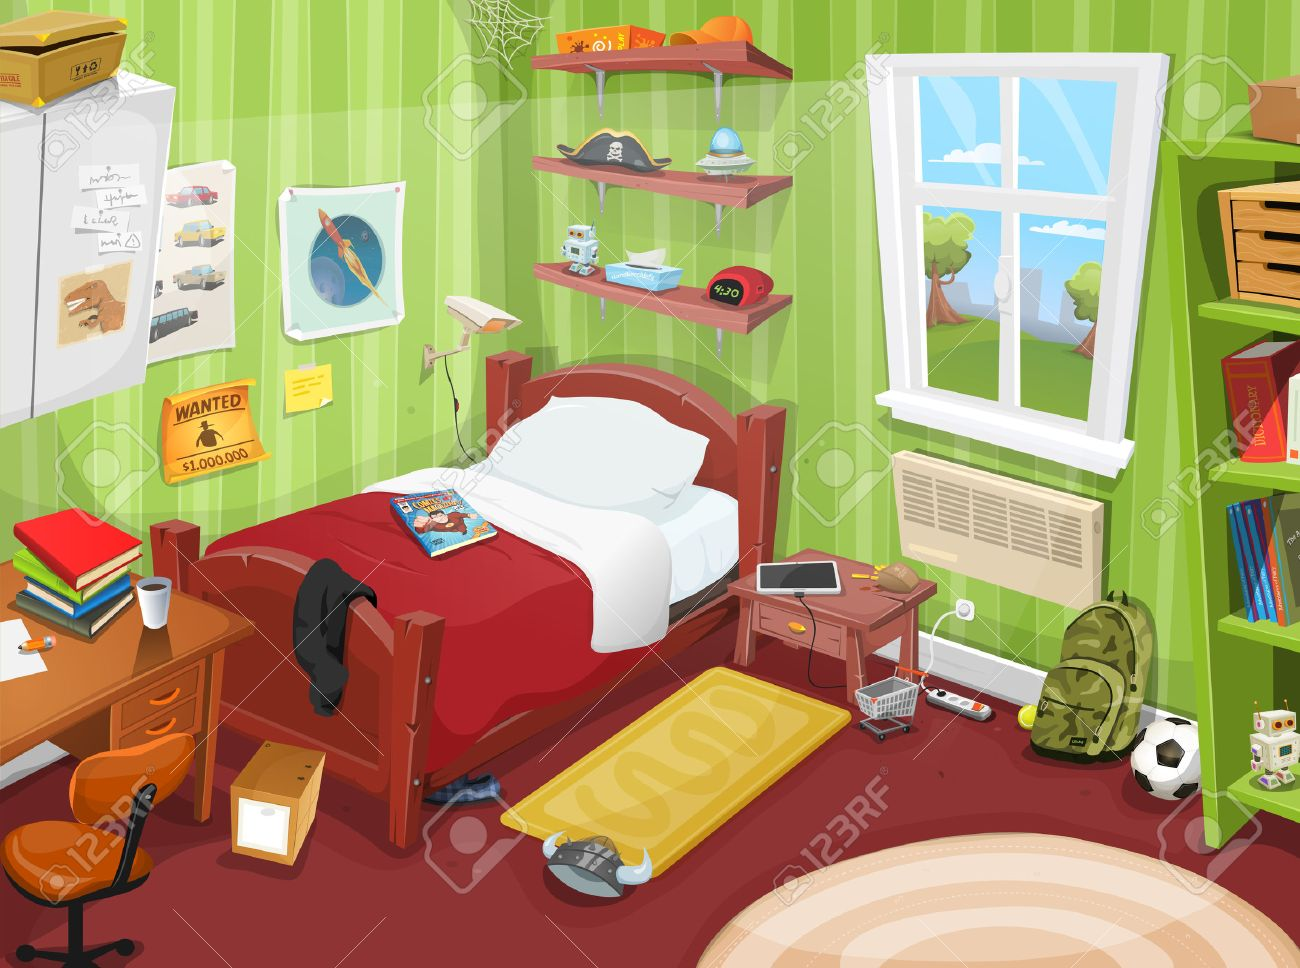 Illustration of a cartoon kid or teenager bedroom with boy or girl  lifestyle elements  toys. Illustration Of A Cartoon Kid Or Teenager Bedroom With Boy Or